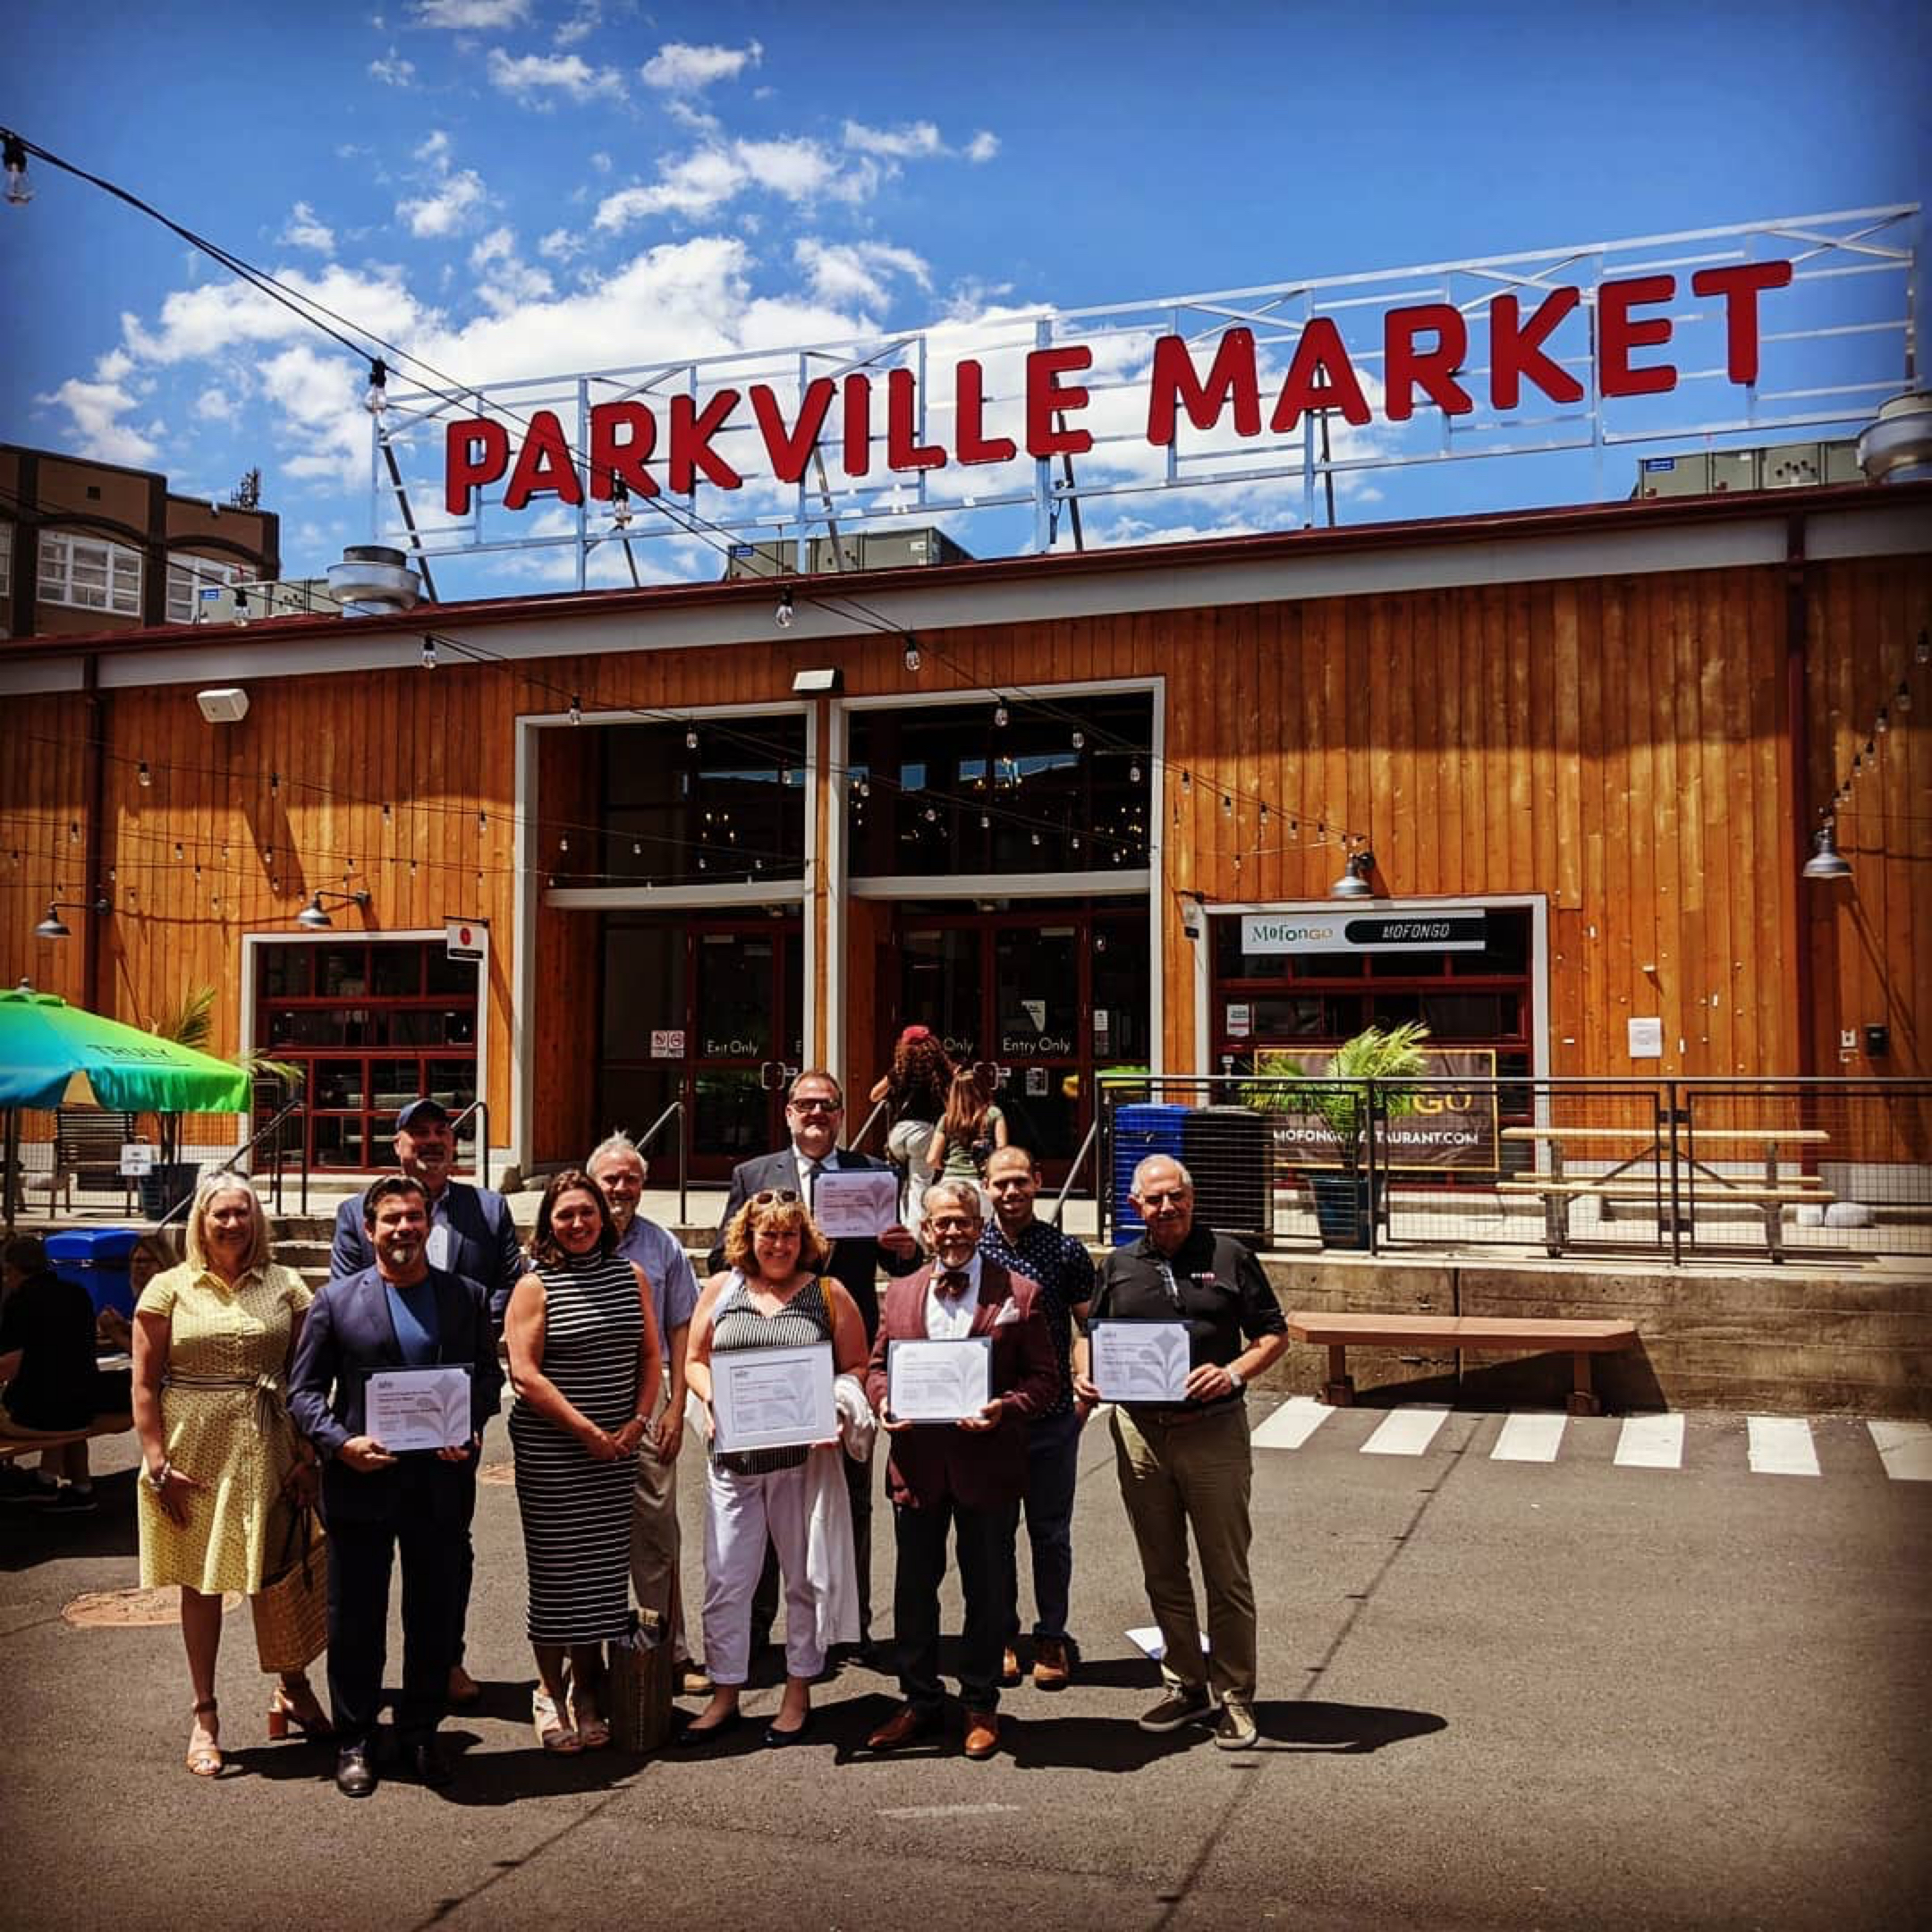 Twenty-five years ago, longtime Parkville resident Carlos Mouta bought several buildings in this former industrial neighborhood now listed on the National Register of Historic Places. When a FastTrack bus terminal opened nearby, Parkville became more accessible, sparking new opportunities for redevelopment, and @parkvillemarket was born. Today, we had the chance to join the team to present them with their CT Preservation Award of Merit- and have lunch!  The market campus consists of three buildings built in 1914 and 1921 for a lumber company. The central building, a 200-foot-long warehouse, is the first to be redeveloped has been transformed into a vibrant food hall, offering space for 18 vendors as well as dining areas, meeting rooms, and event space. Sustainable design and cooperation with local nonprofits played important roles in the conversion. Although the market opened in the middle of the pandemic, all segments of the community have happily come to eat, drink, work on their laptops, play in the courtyard, and meet in the meeting rooms. By highlighting Hartford's diverse population and its food culture, Parkville Market has been embraced by its neighbors and not seen as a foothold for gentrification.   Project team: Parkville Market, LLC, BETA Group, Inc., @lifecaredesign, The ArtFitters, LLC, Aztech Engineers  Another thanks to the generous sponsors of our awards ceremony: @crosskeyarch , JMKA Architects, @gulickco.renovations and @patriquinarch and thanks to Board member @deb_frontdoorproject for joining us!